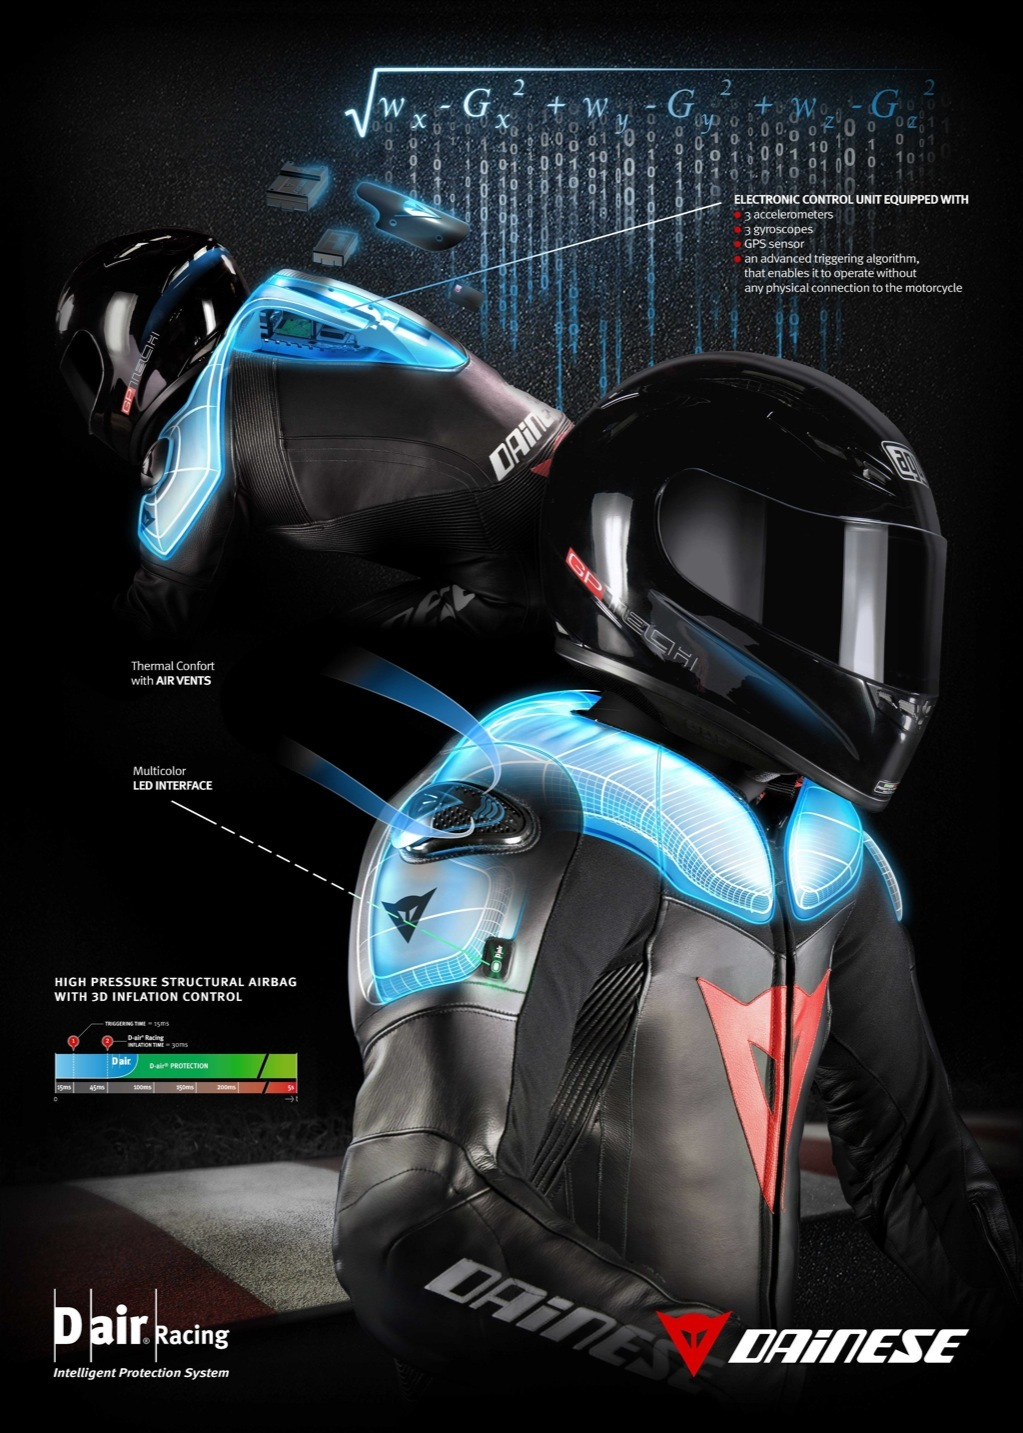 dainese-d-air-racing-suit-airbag-system-supports-google-earth_1.jpg